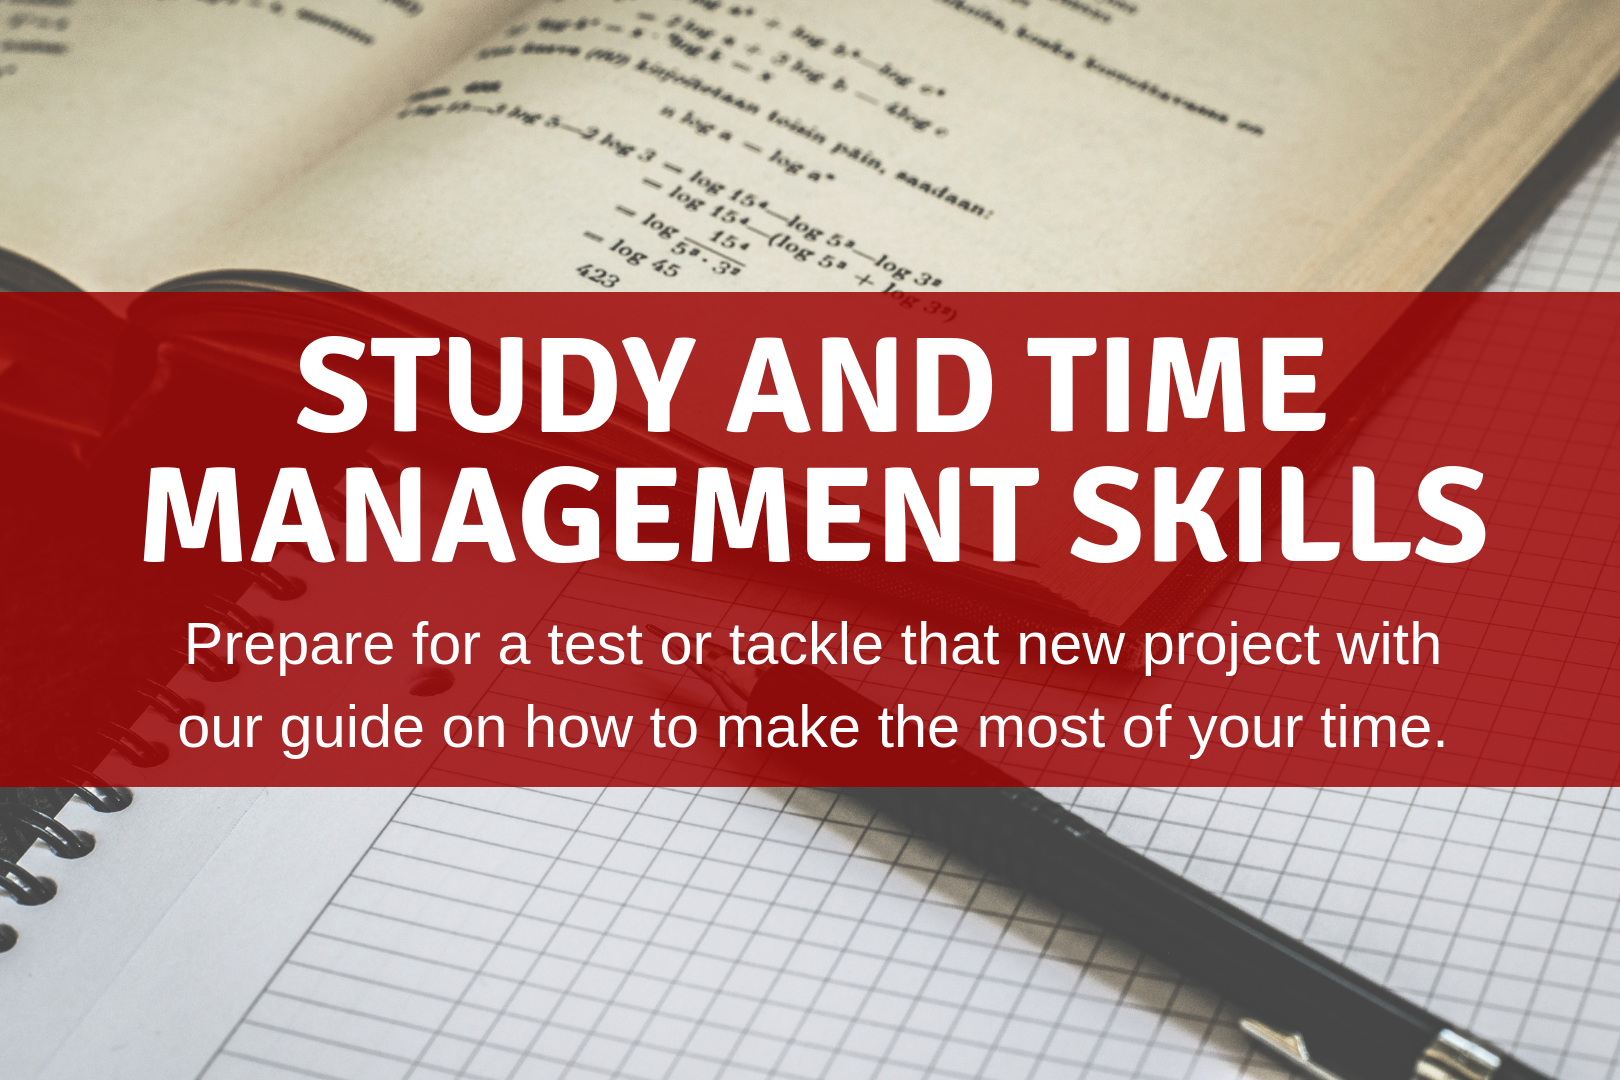 Study and Time Management Skills Guide